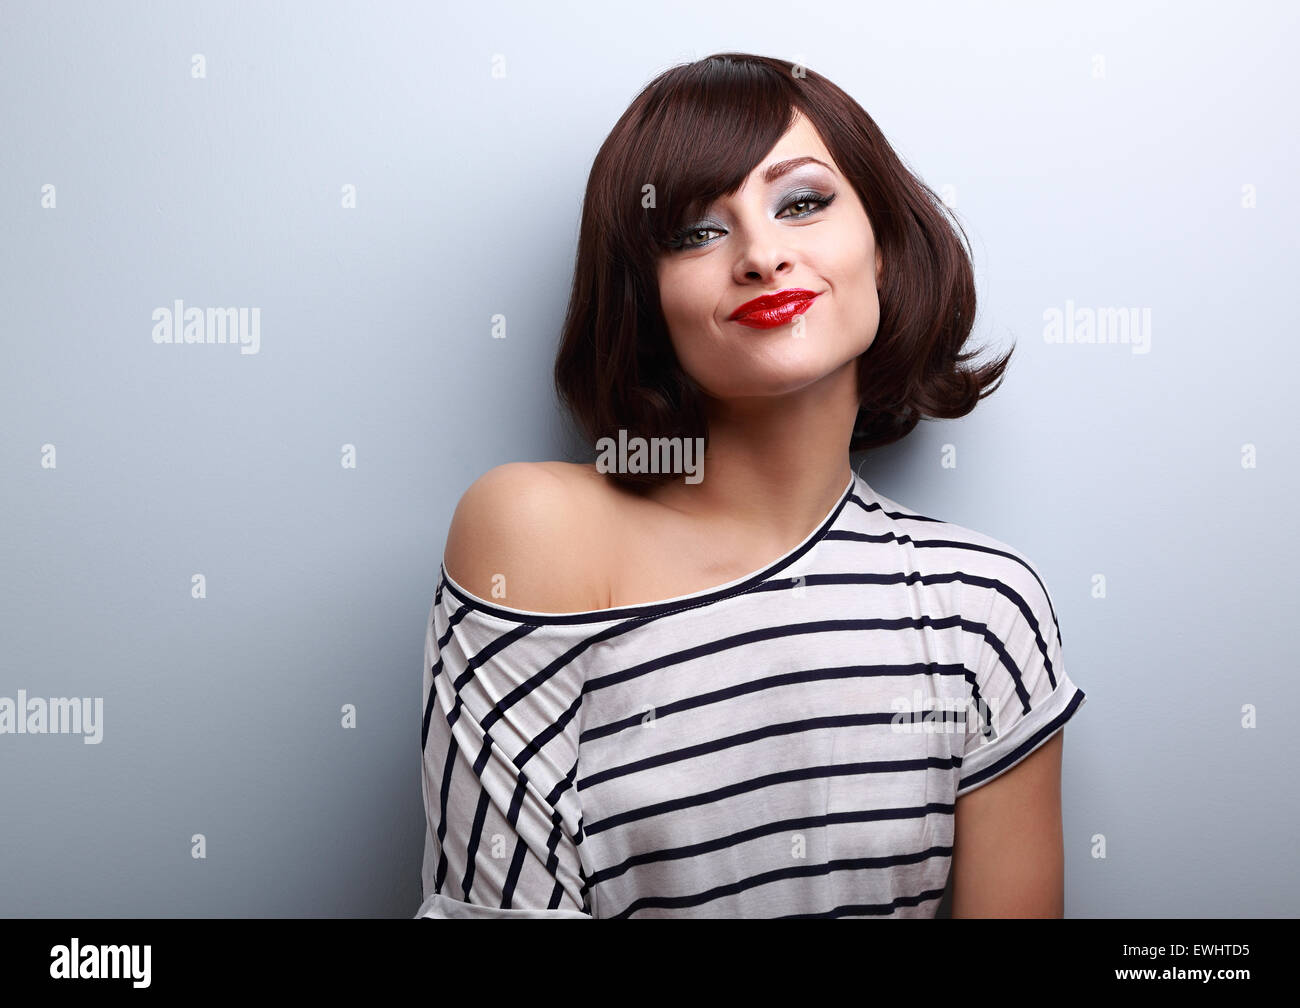 Funny young woman grimacing with short black hair style on black background Stock Photo